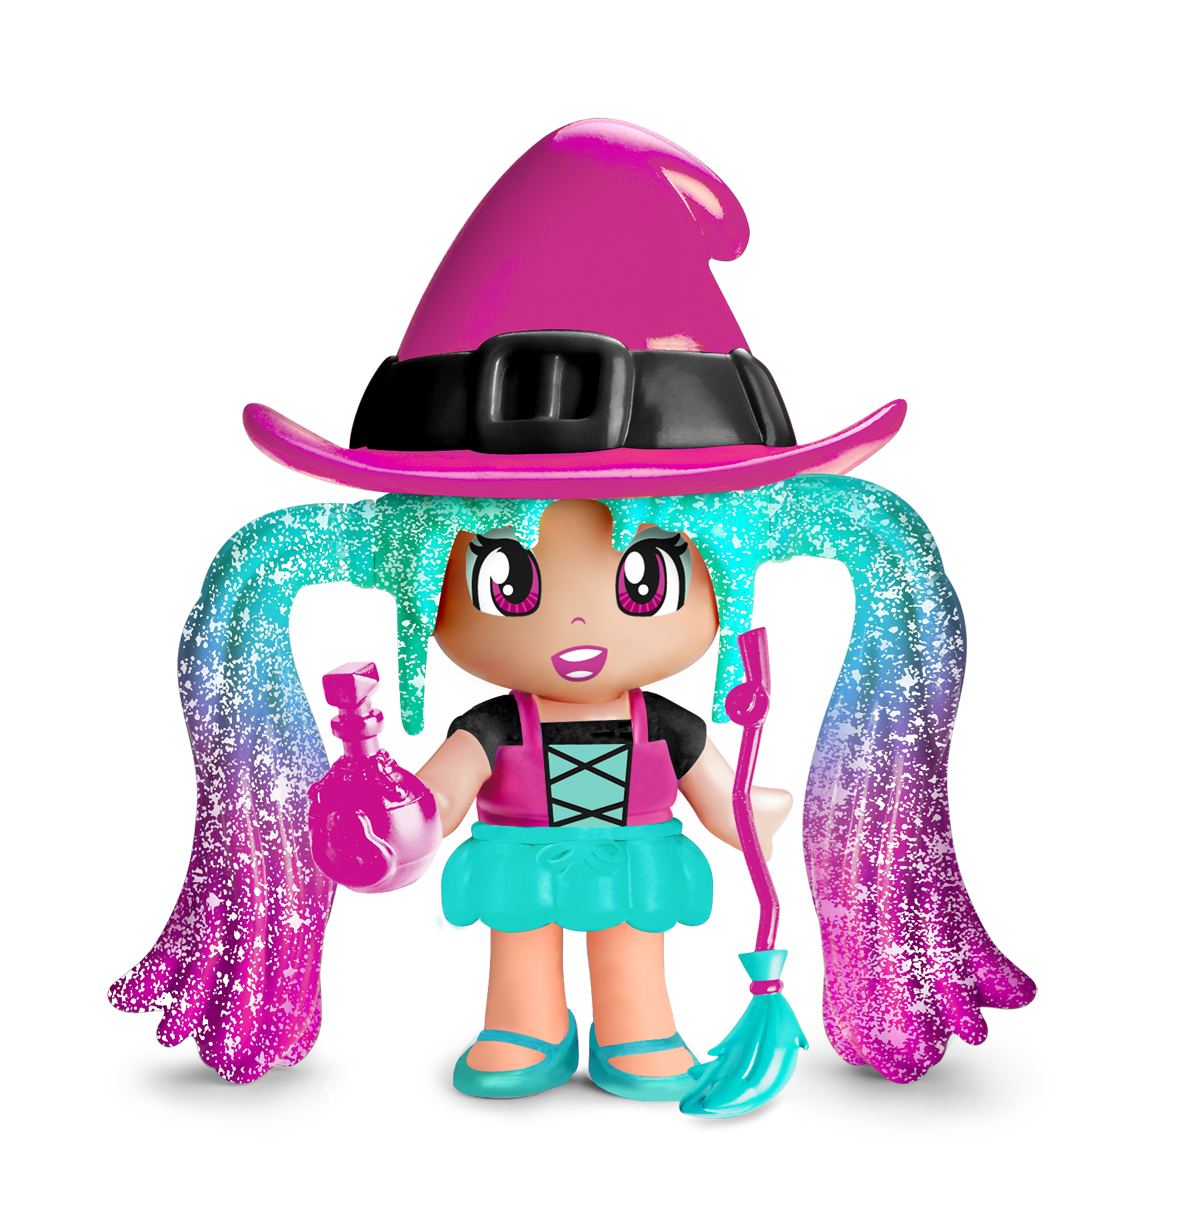 PINYPON WITCHES OOS20 15651